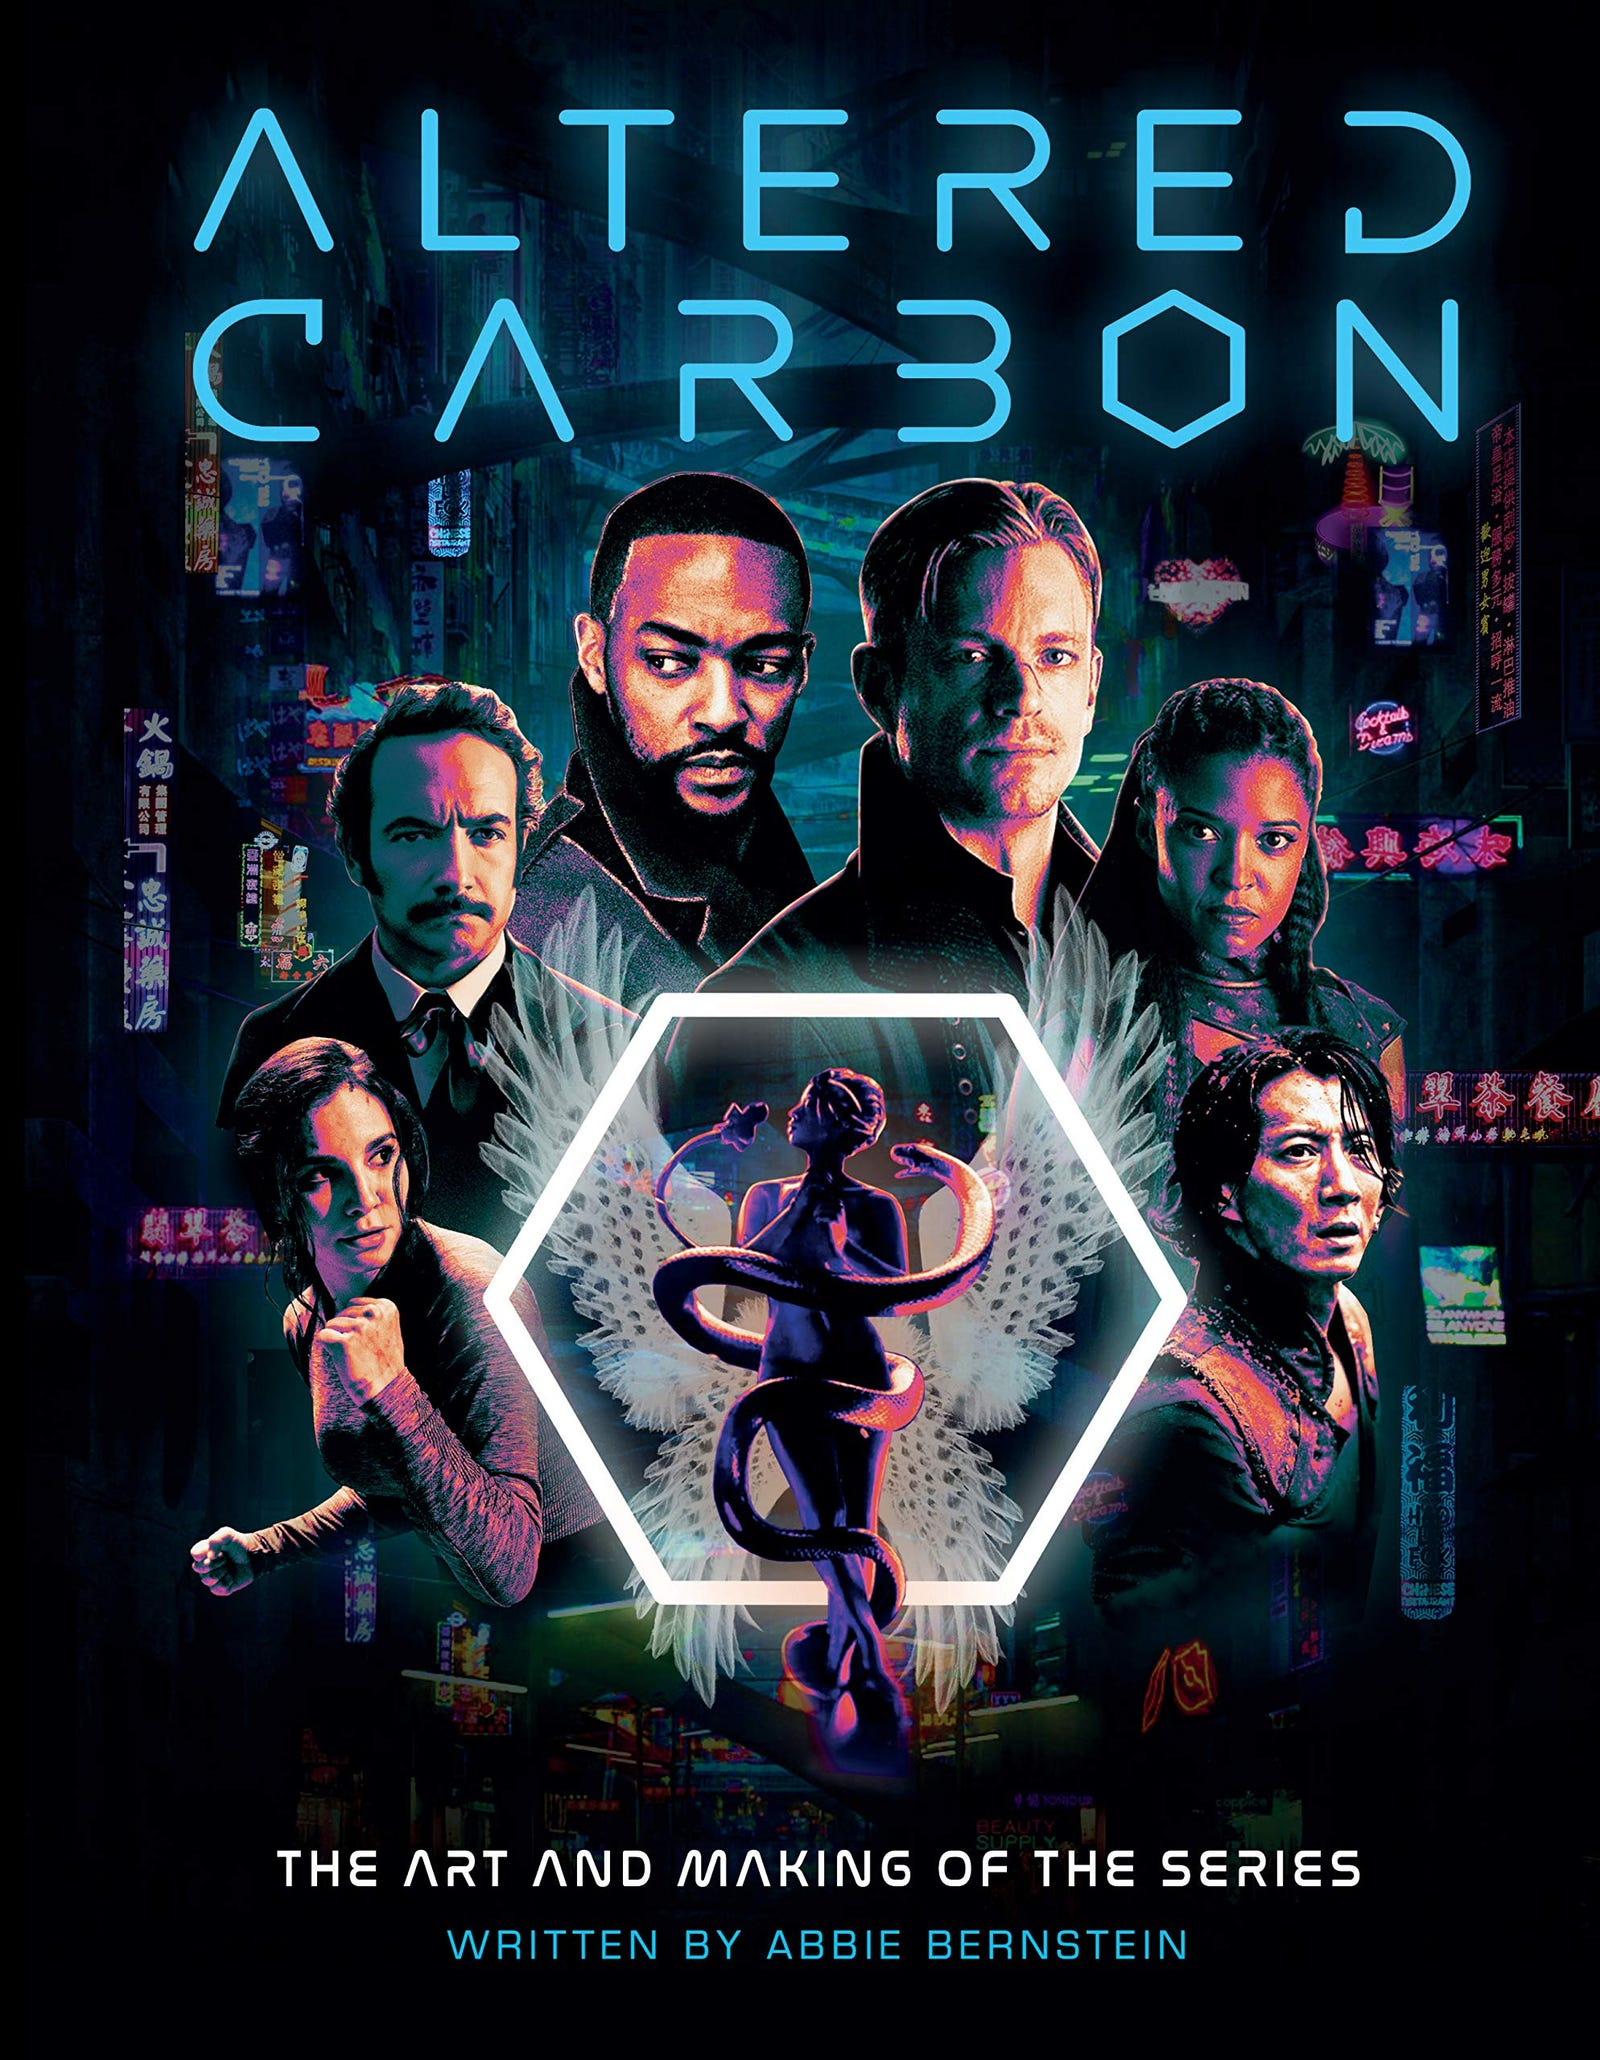 The book cover for Altered Carbon: The Art and Making of the Series.